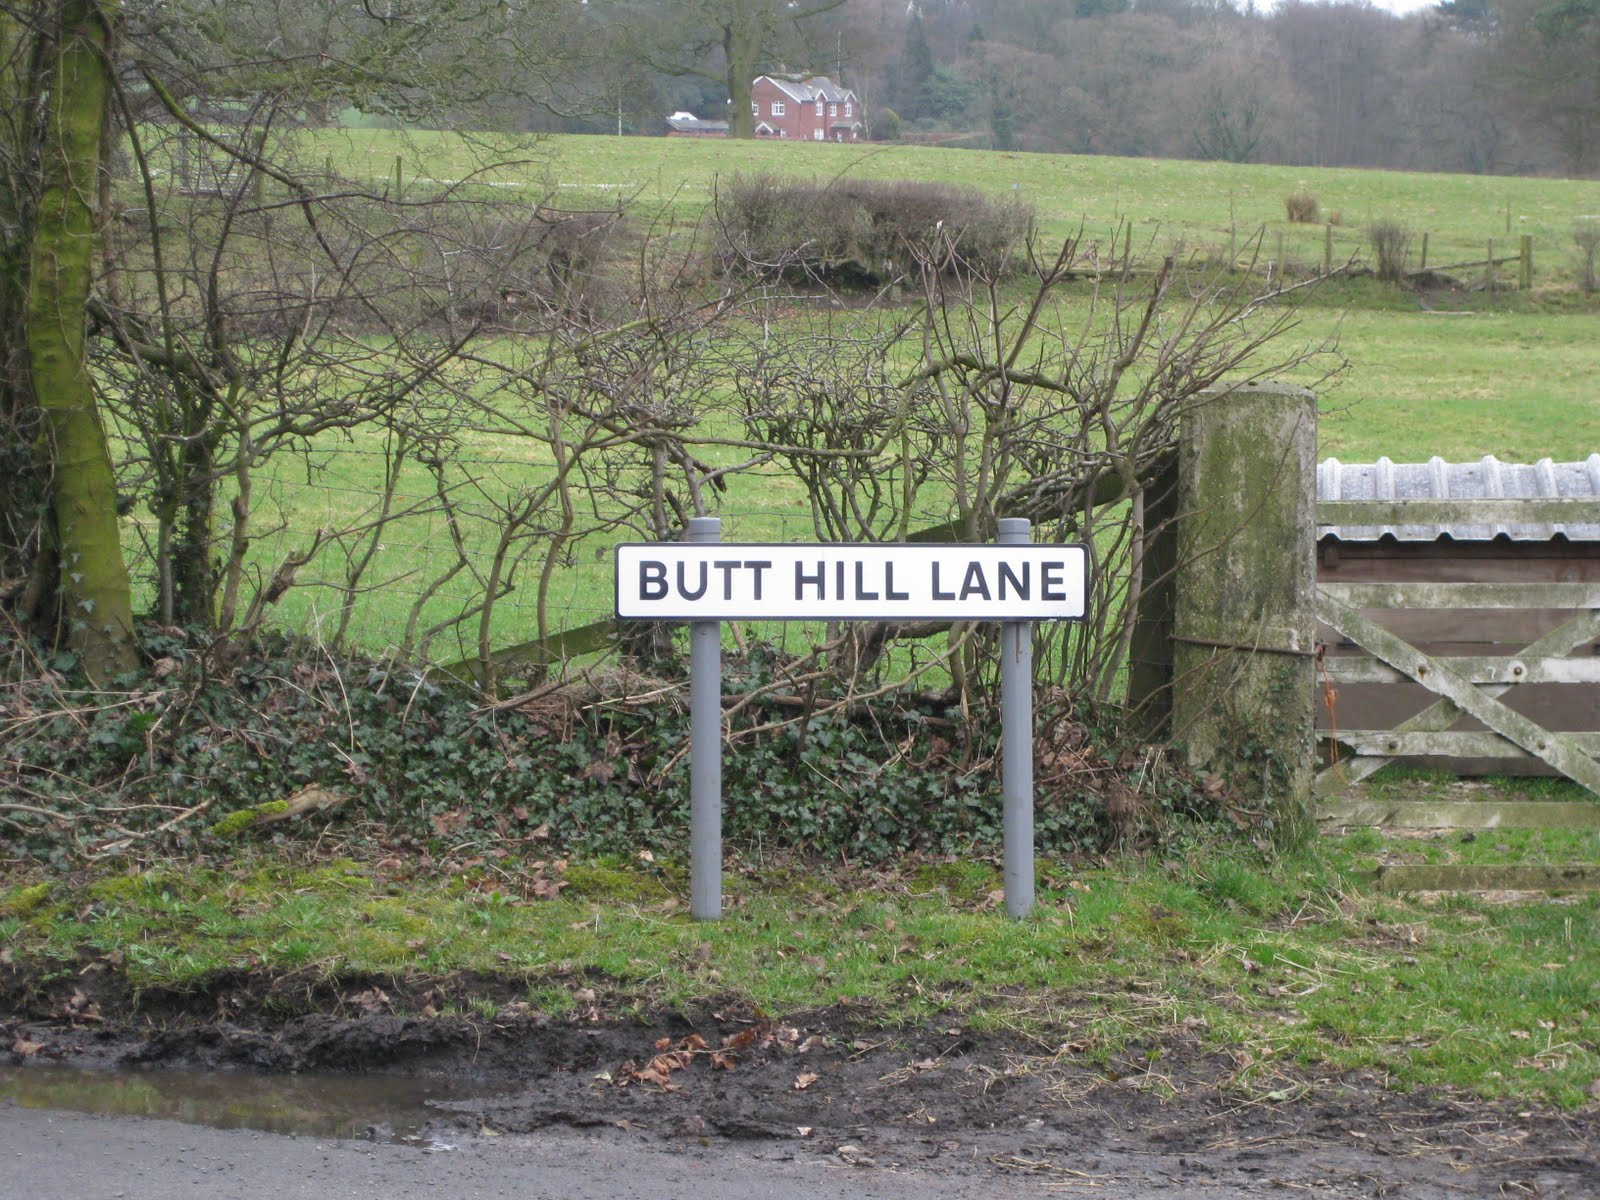 I love the place names